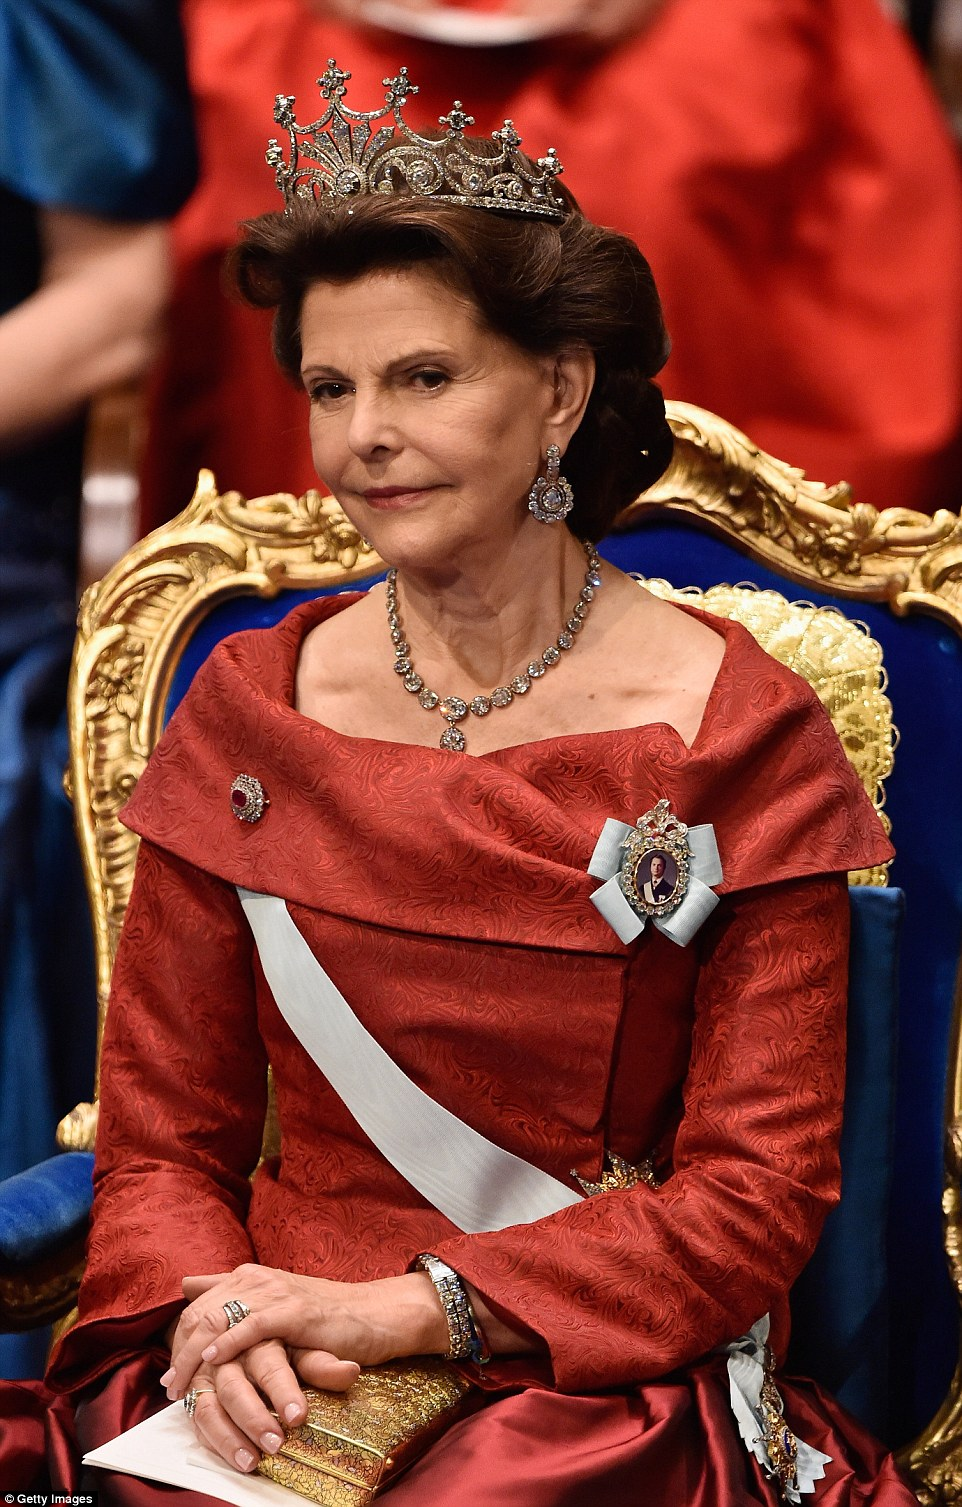 Queen Silvia glittered in her diamond tiara, earrings, necklace, rings and bracelet during the ceremony